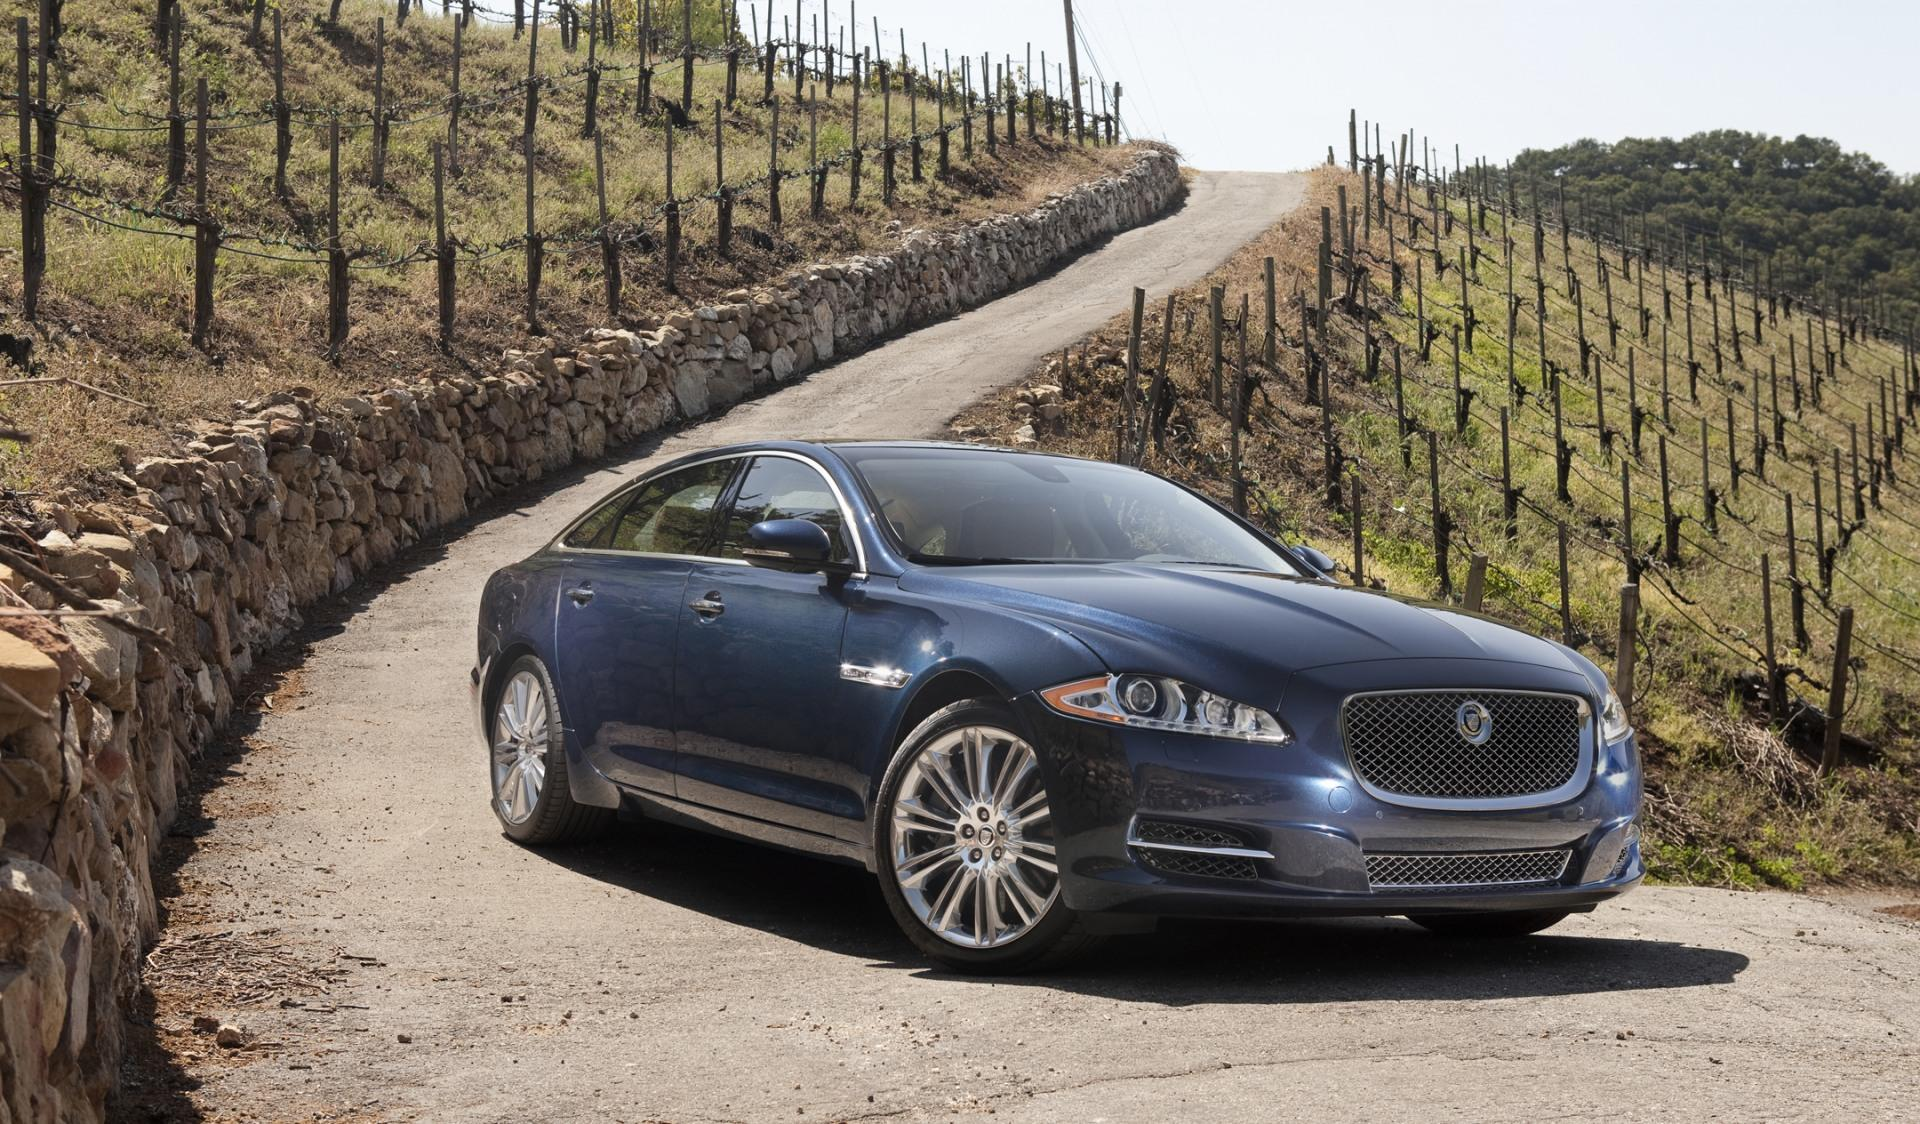 2011 jaguar xj technical specifications and data engine dimensions and mechanical details. Black Bedroom Furniture Sets. Home Design Ideas